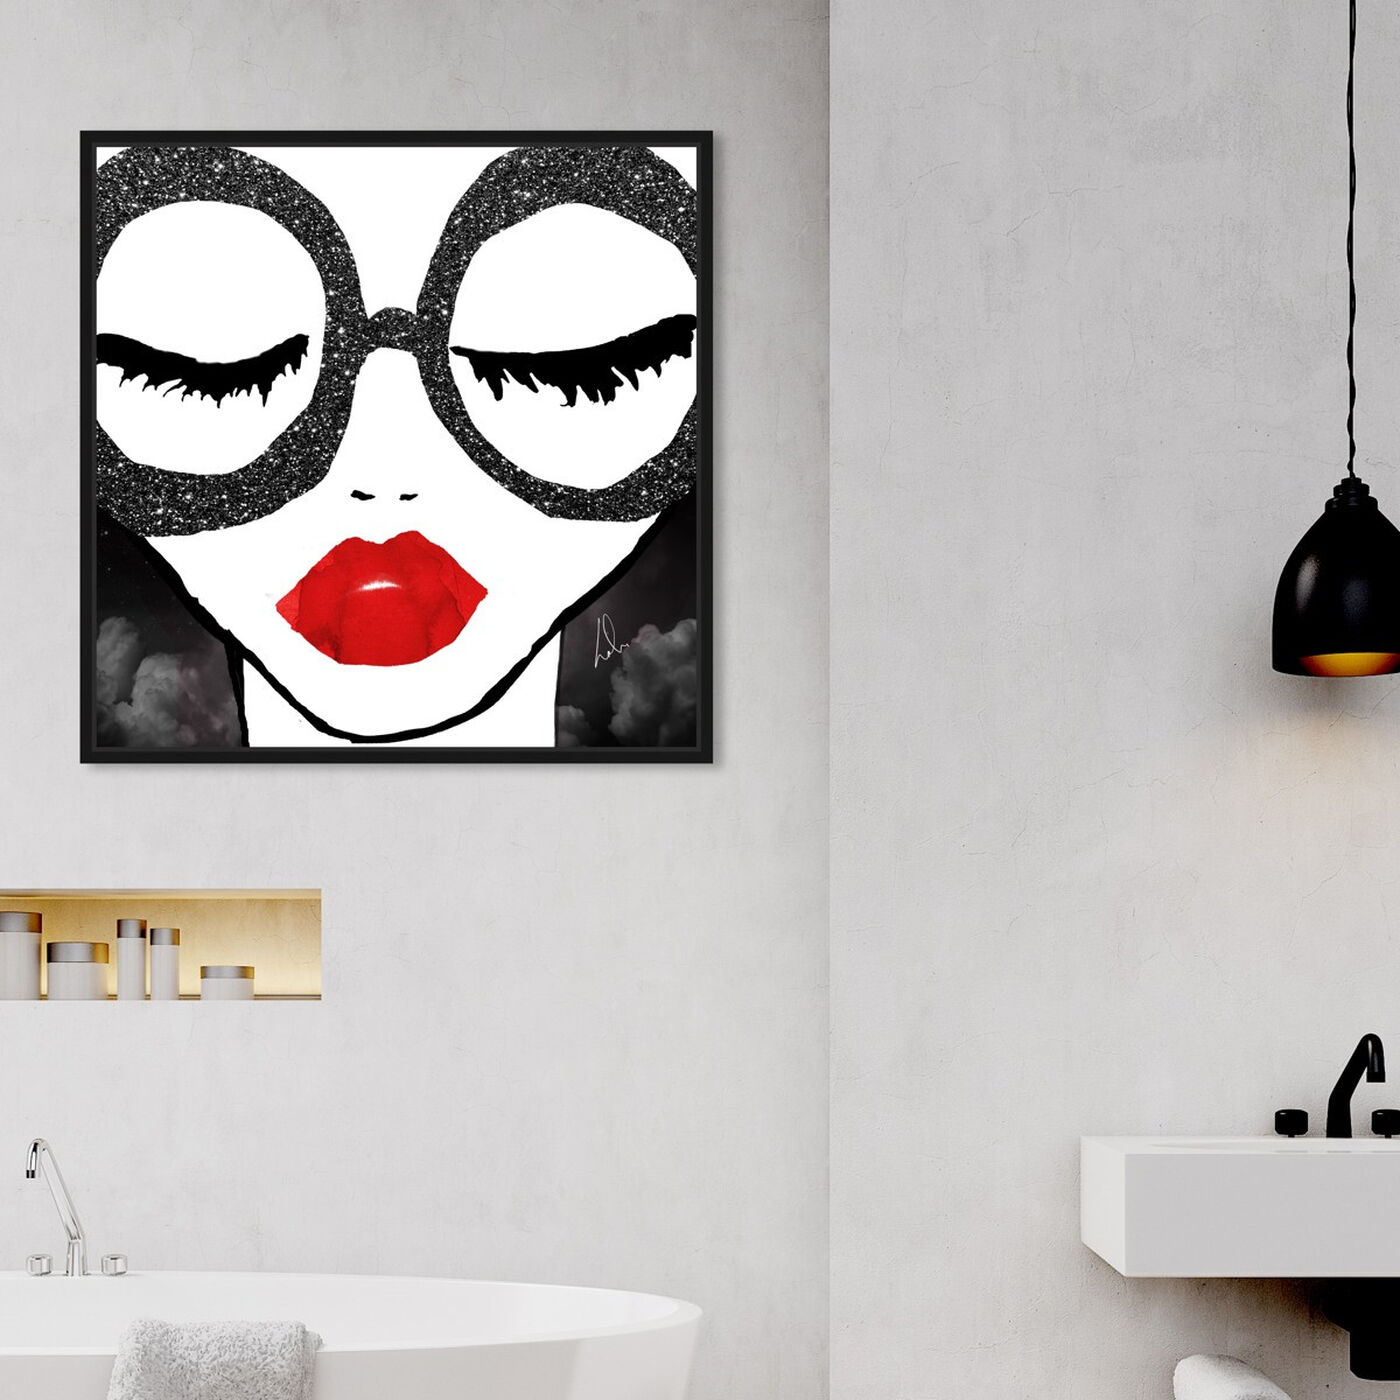 Hanging view of She is all that featuring fashion and glam and portraits art.